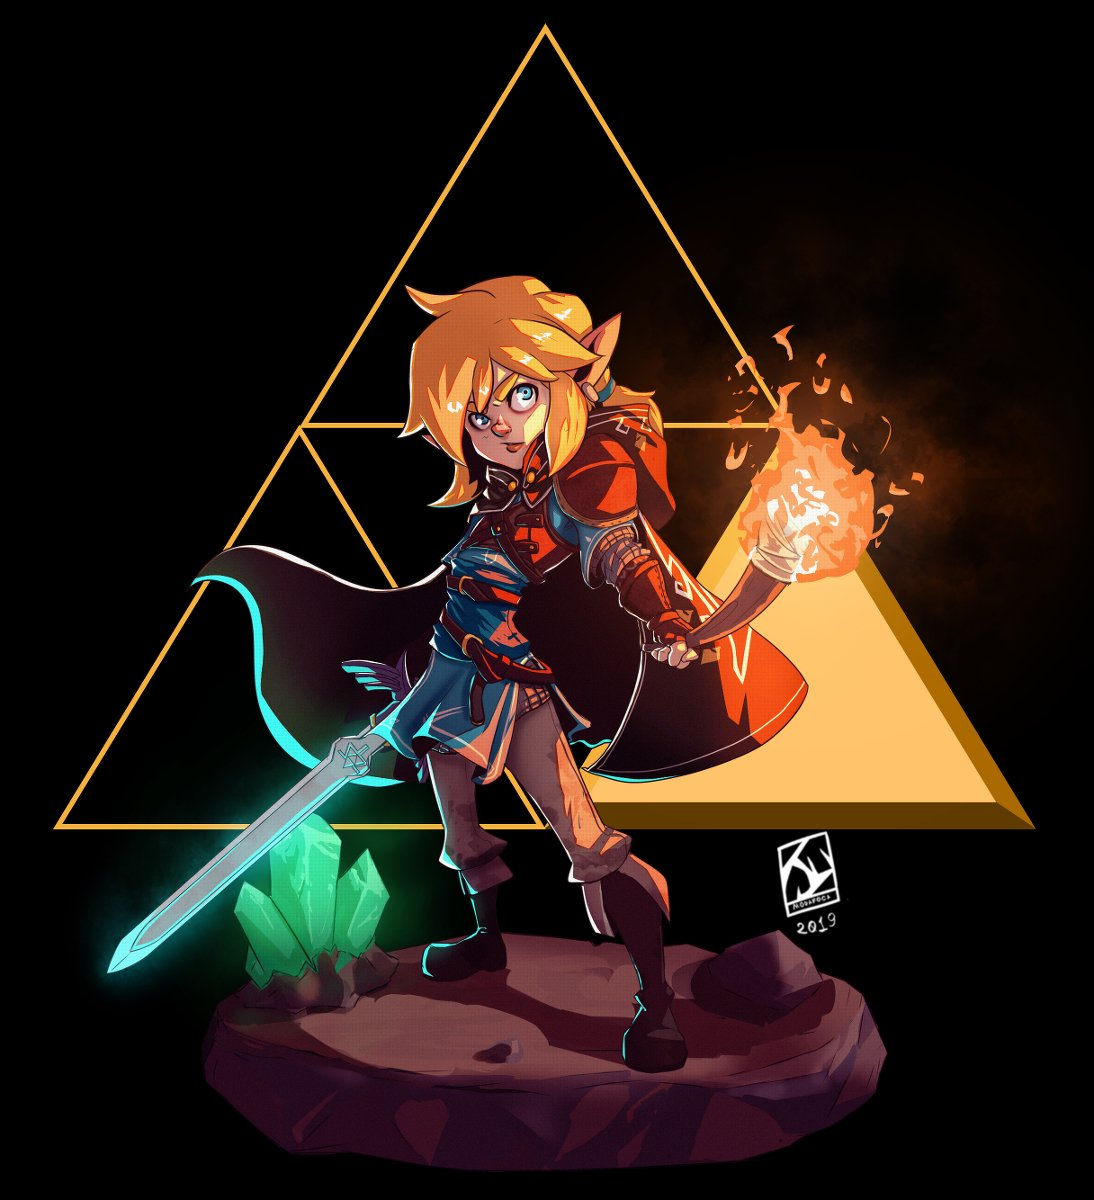 Juliano Vieira Commission Open 4 Slots On Twitter Zelda